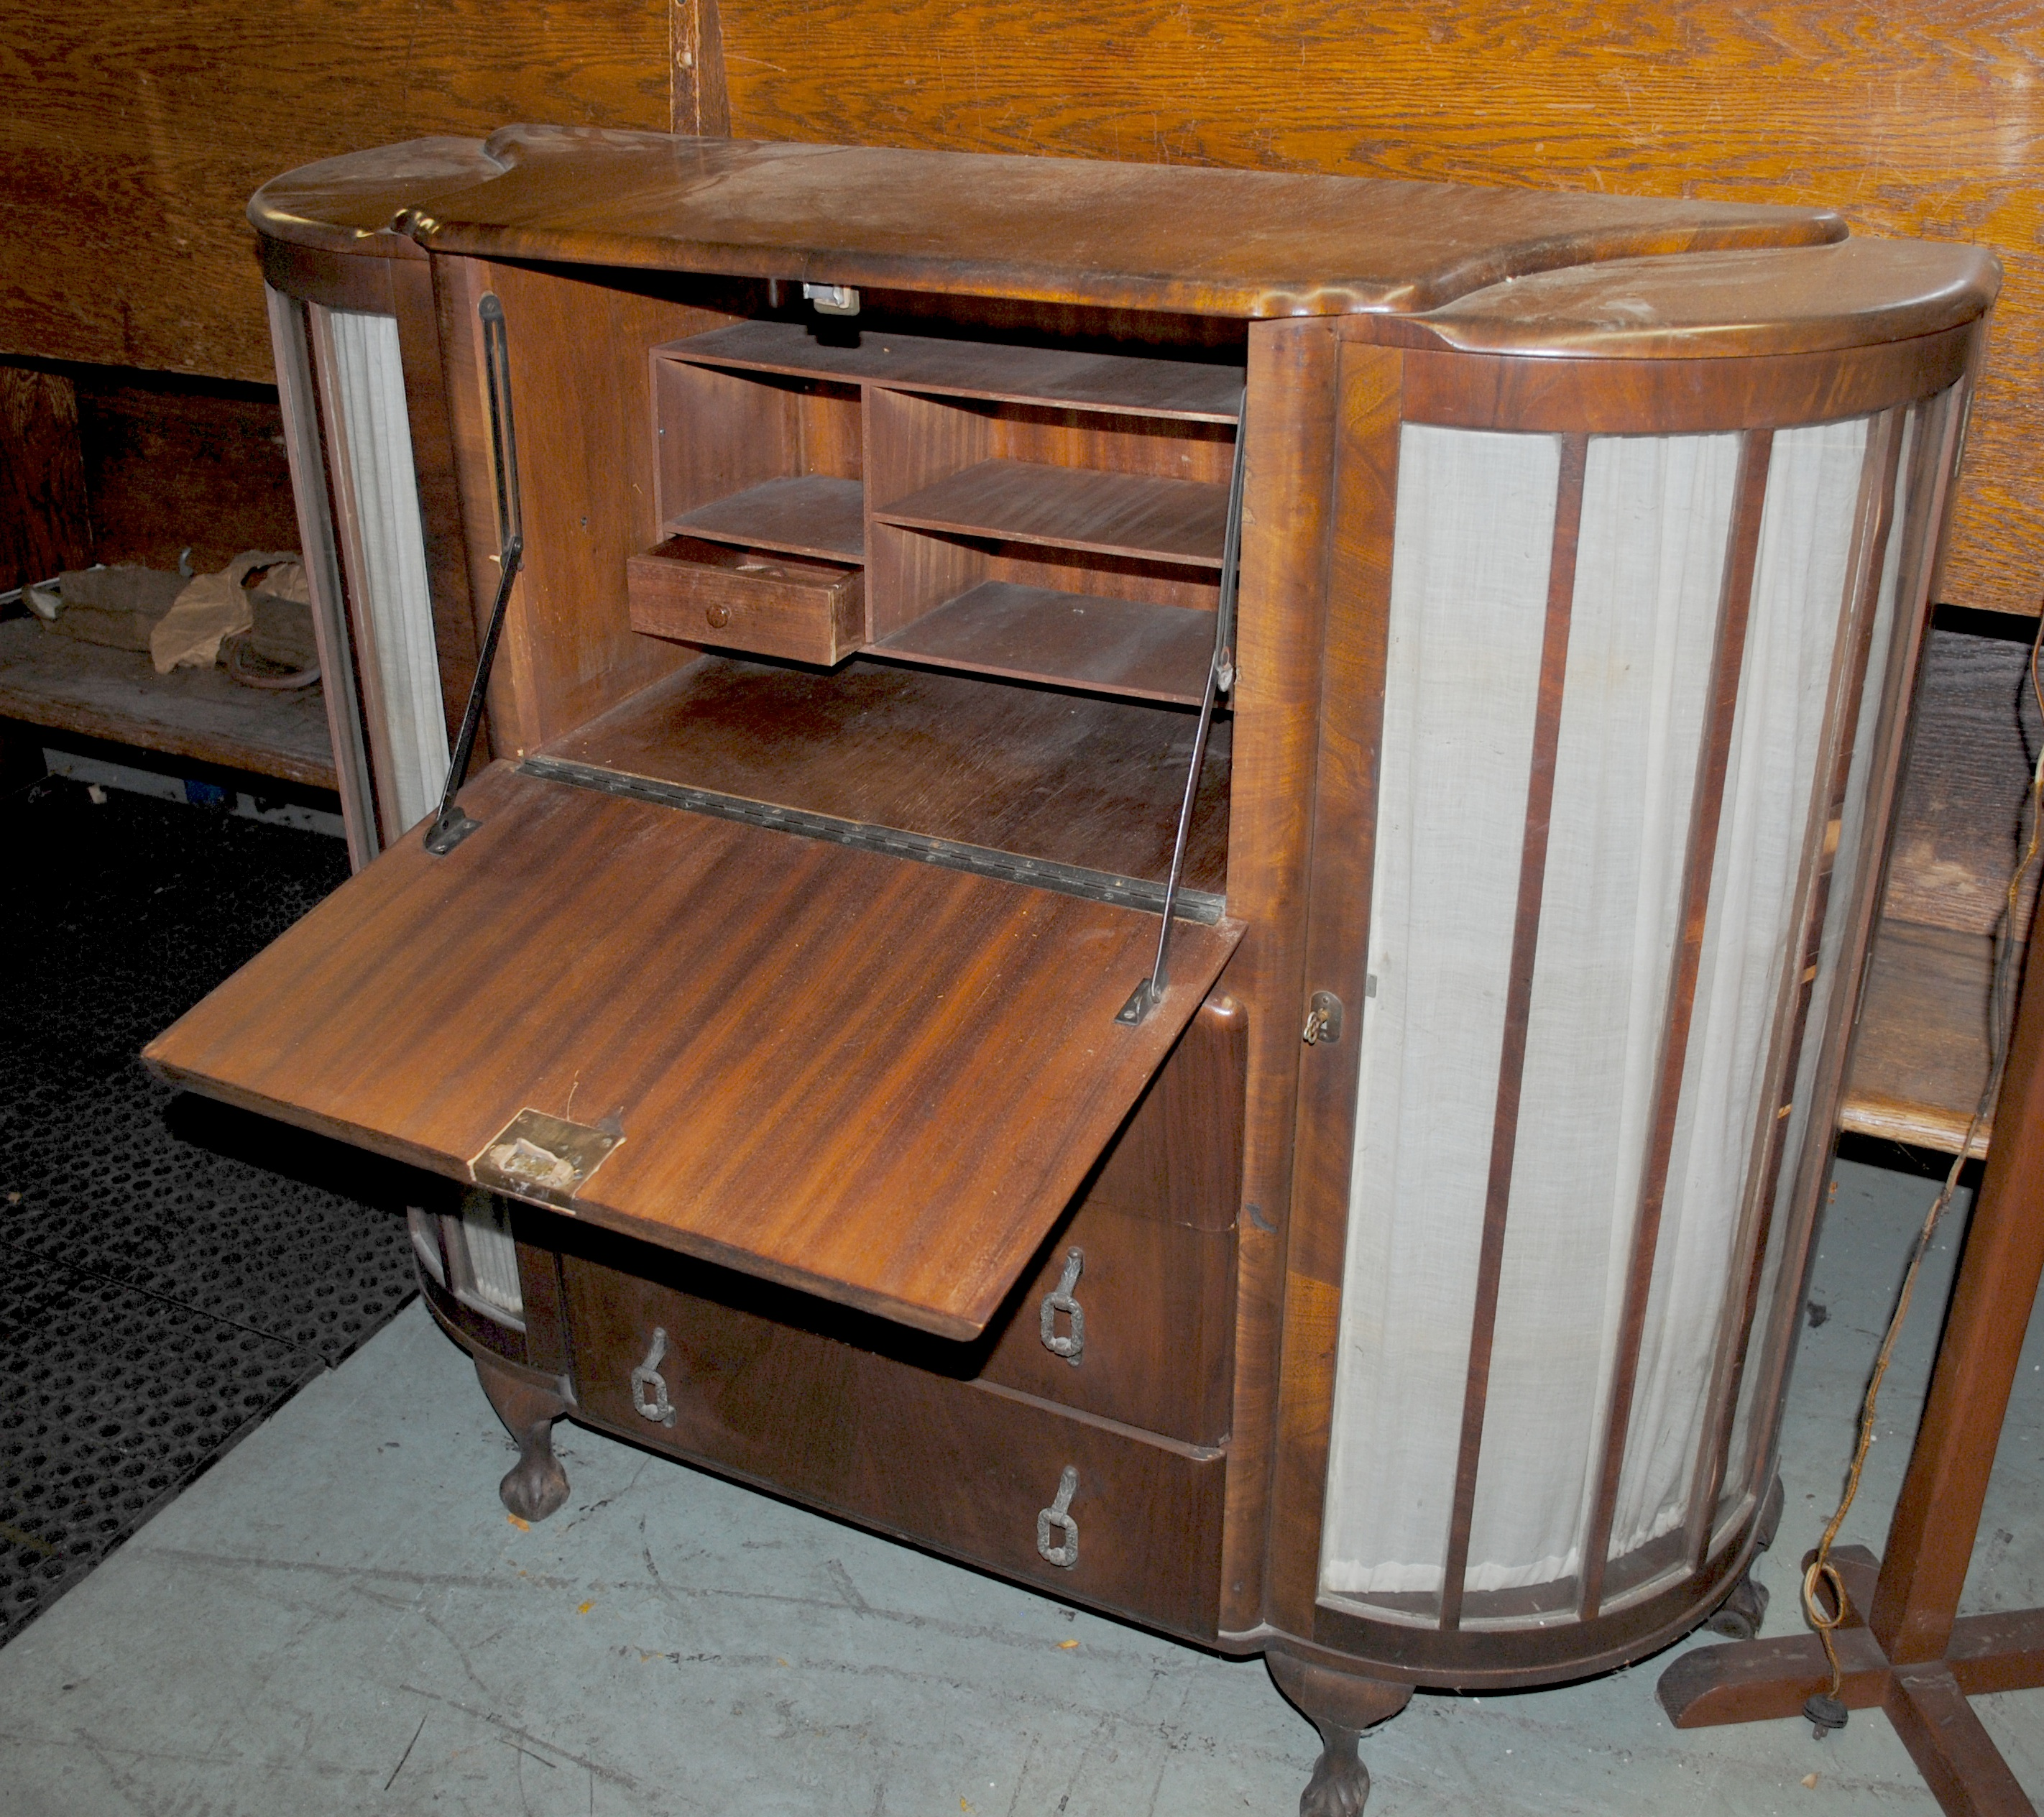 Queens garbage company finds vintage art deco-style dresser in ...